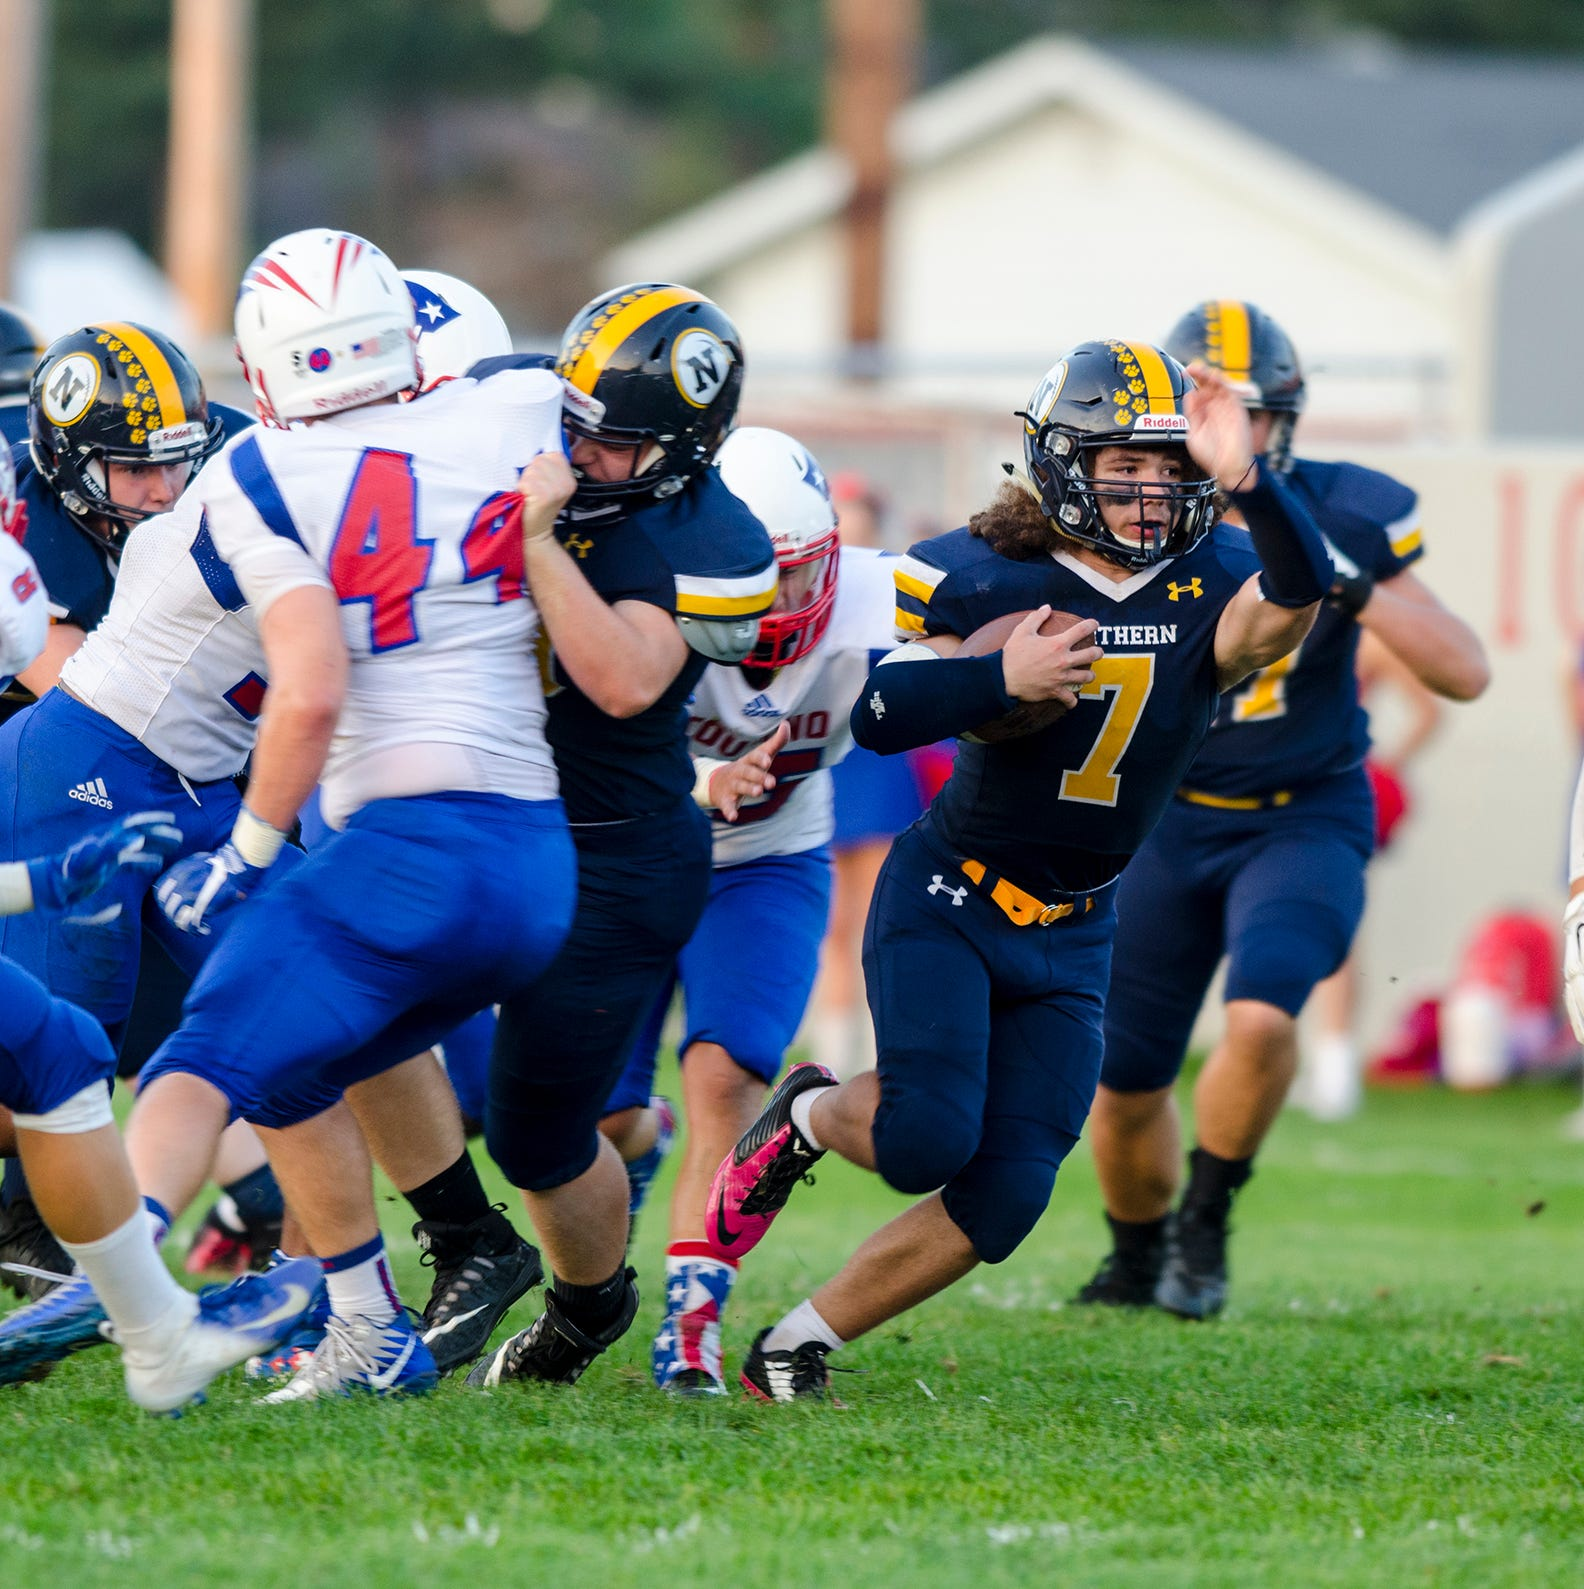 Week 4 Football Recap: Port Huron Northern earns impressive victory, Marine City falls